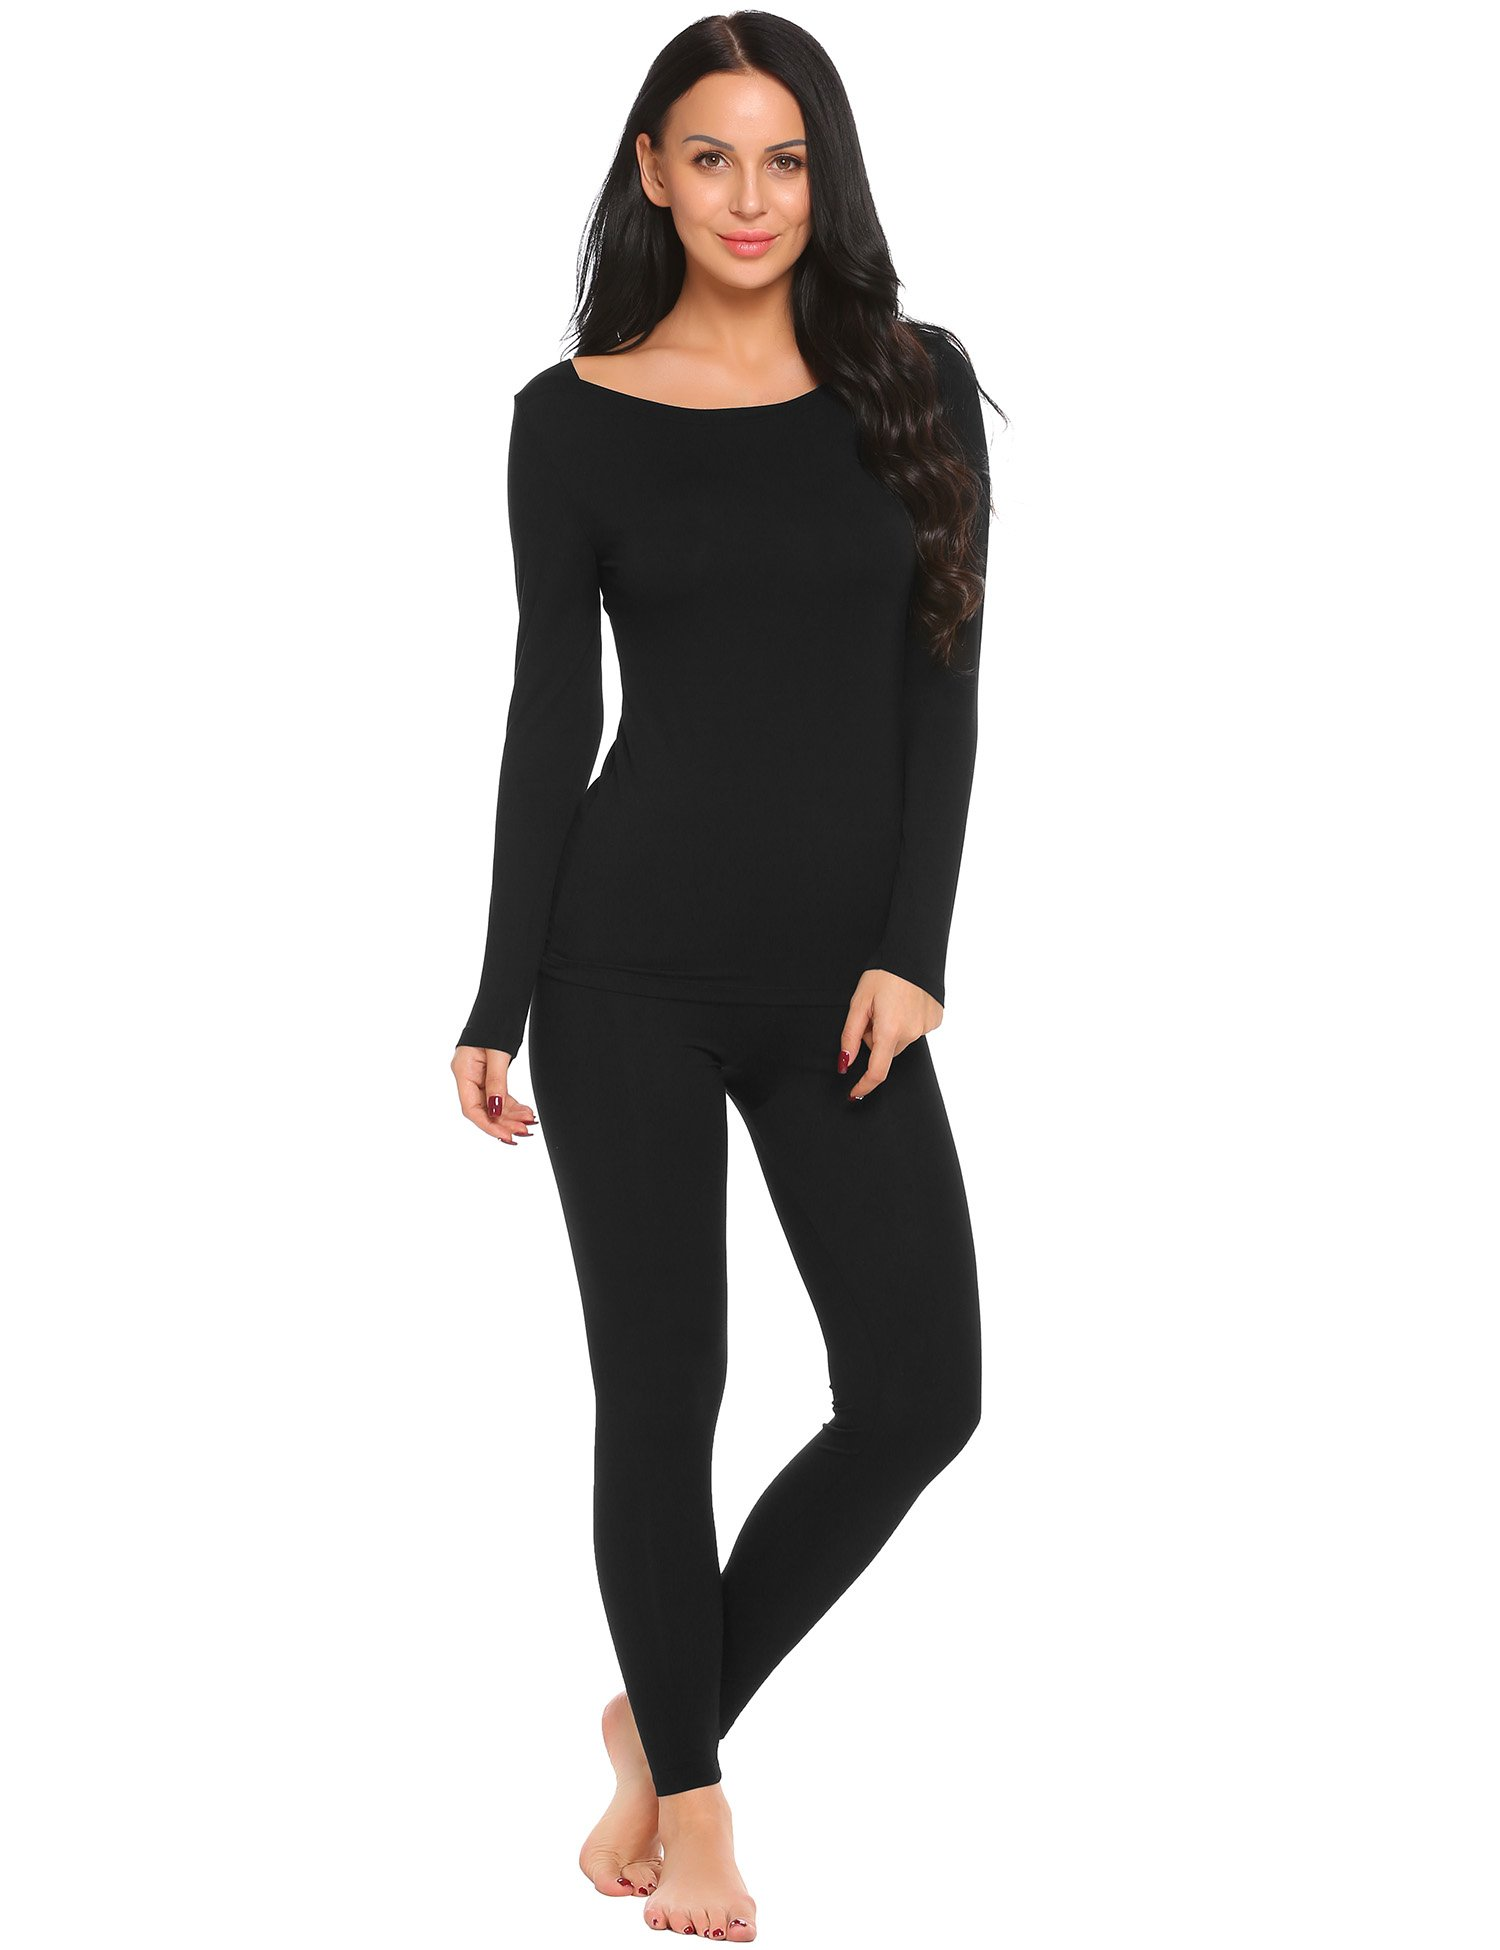 Ekouaer Womens Long Johns Thermal Underwear Set Base Layer Top and Pants,Black(7893),Small